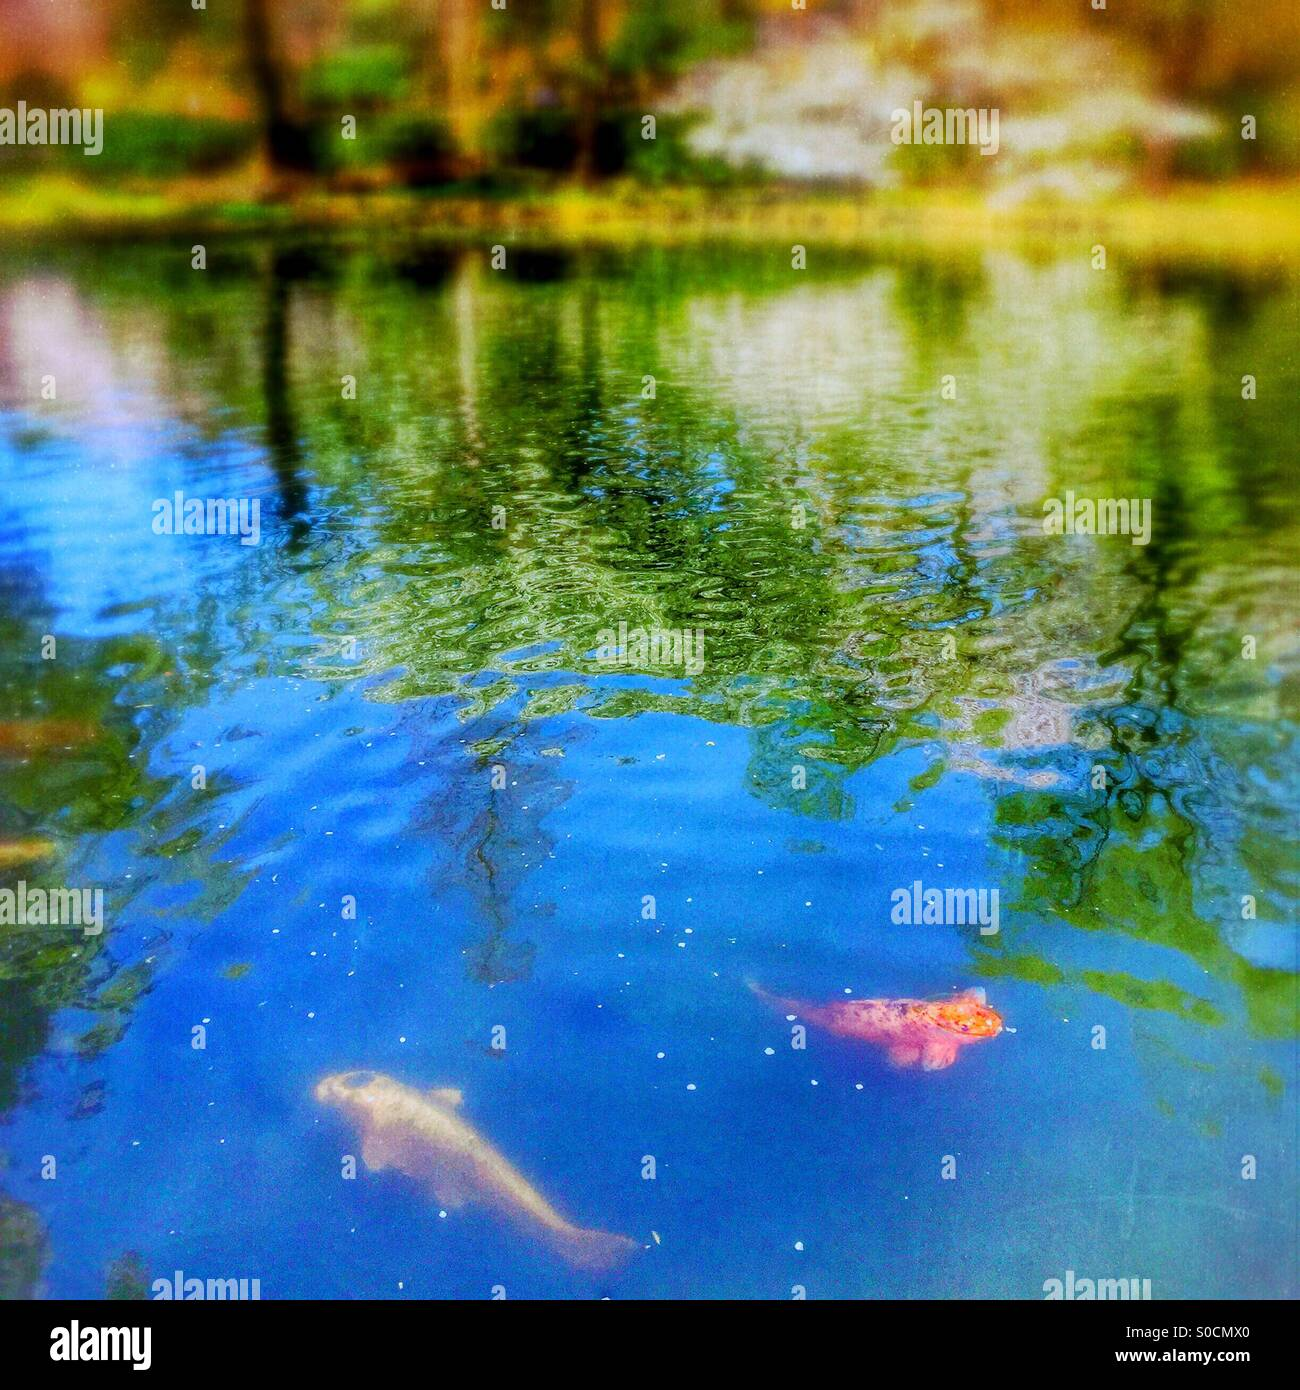 Yellow and orange Japanese koi fish swimming in pond with cherry blossom petals scattered on water surface. Willow - Stock Image